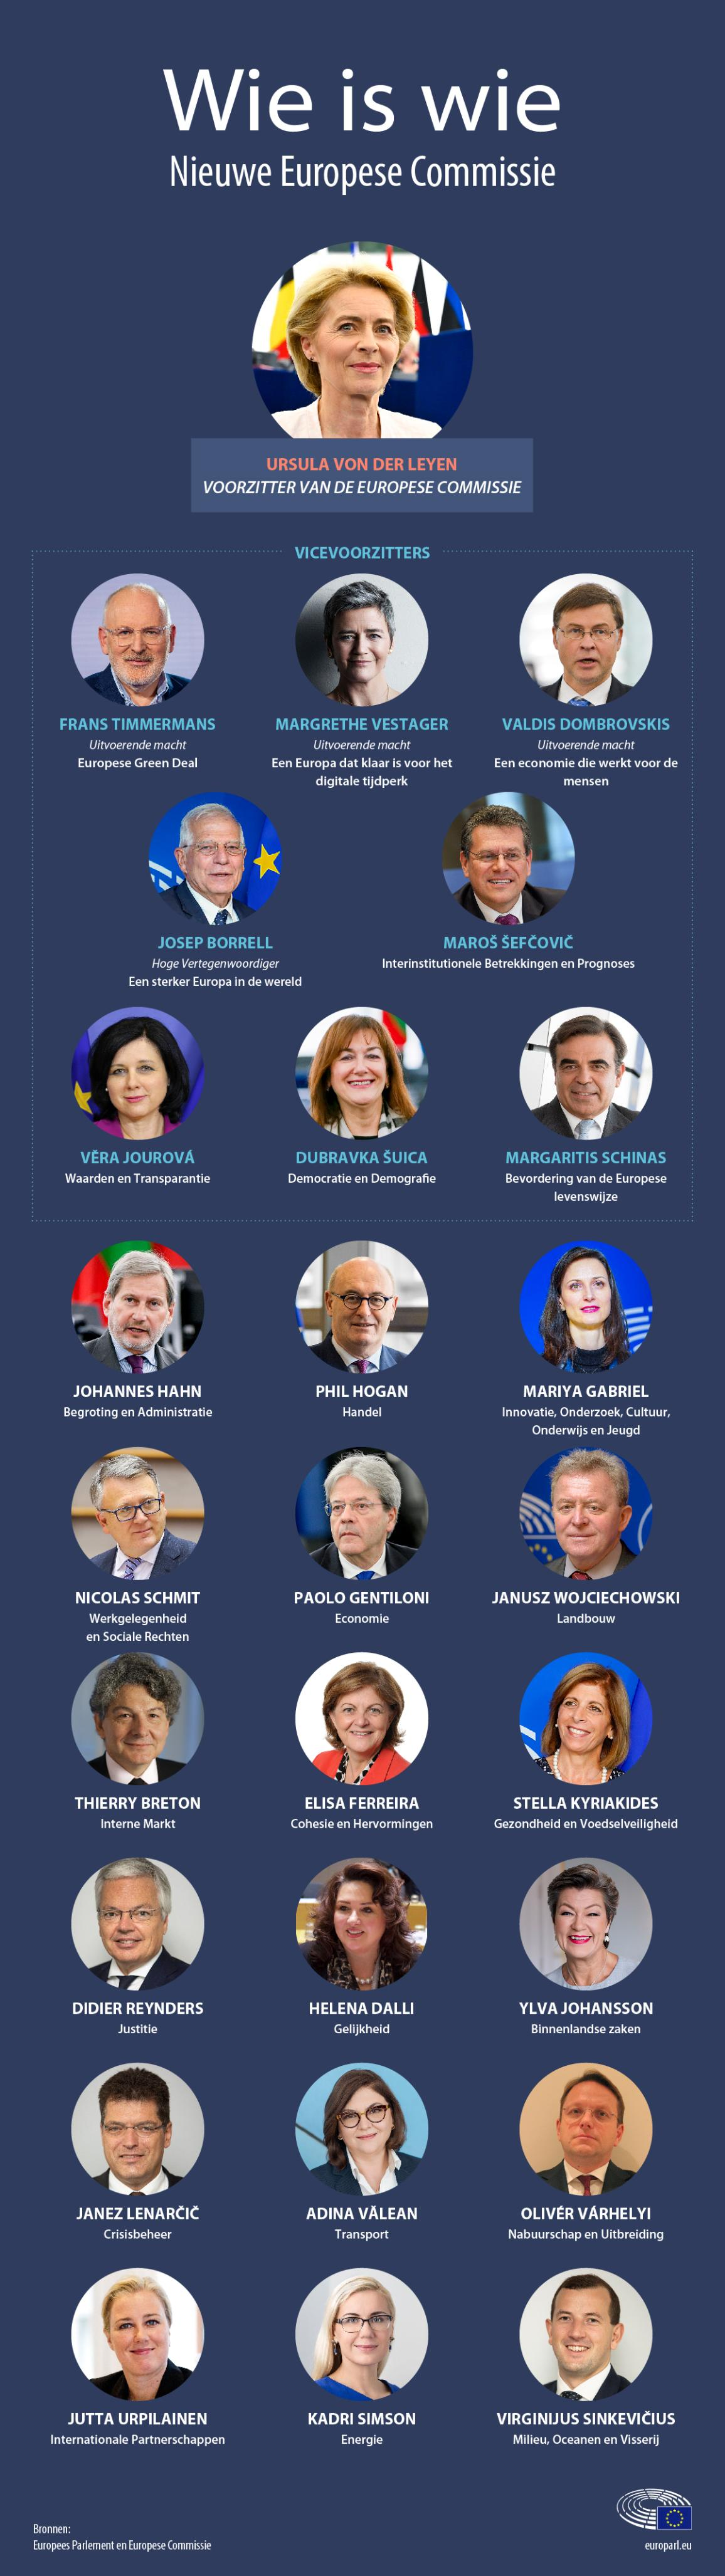 infographic on who's who at the new European Commission